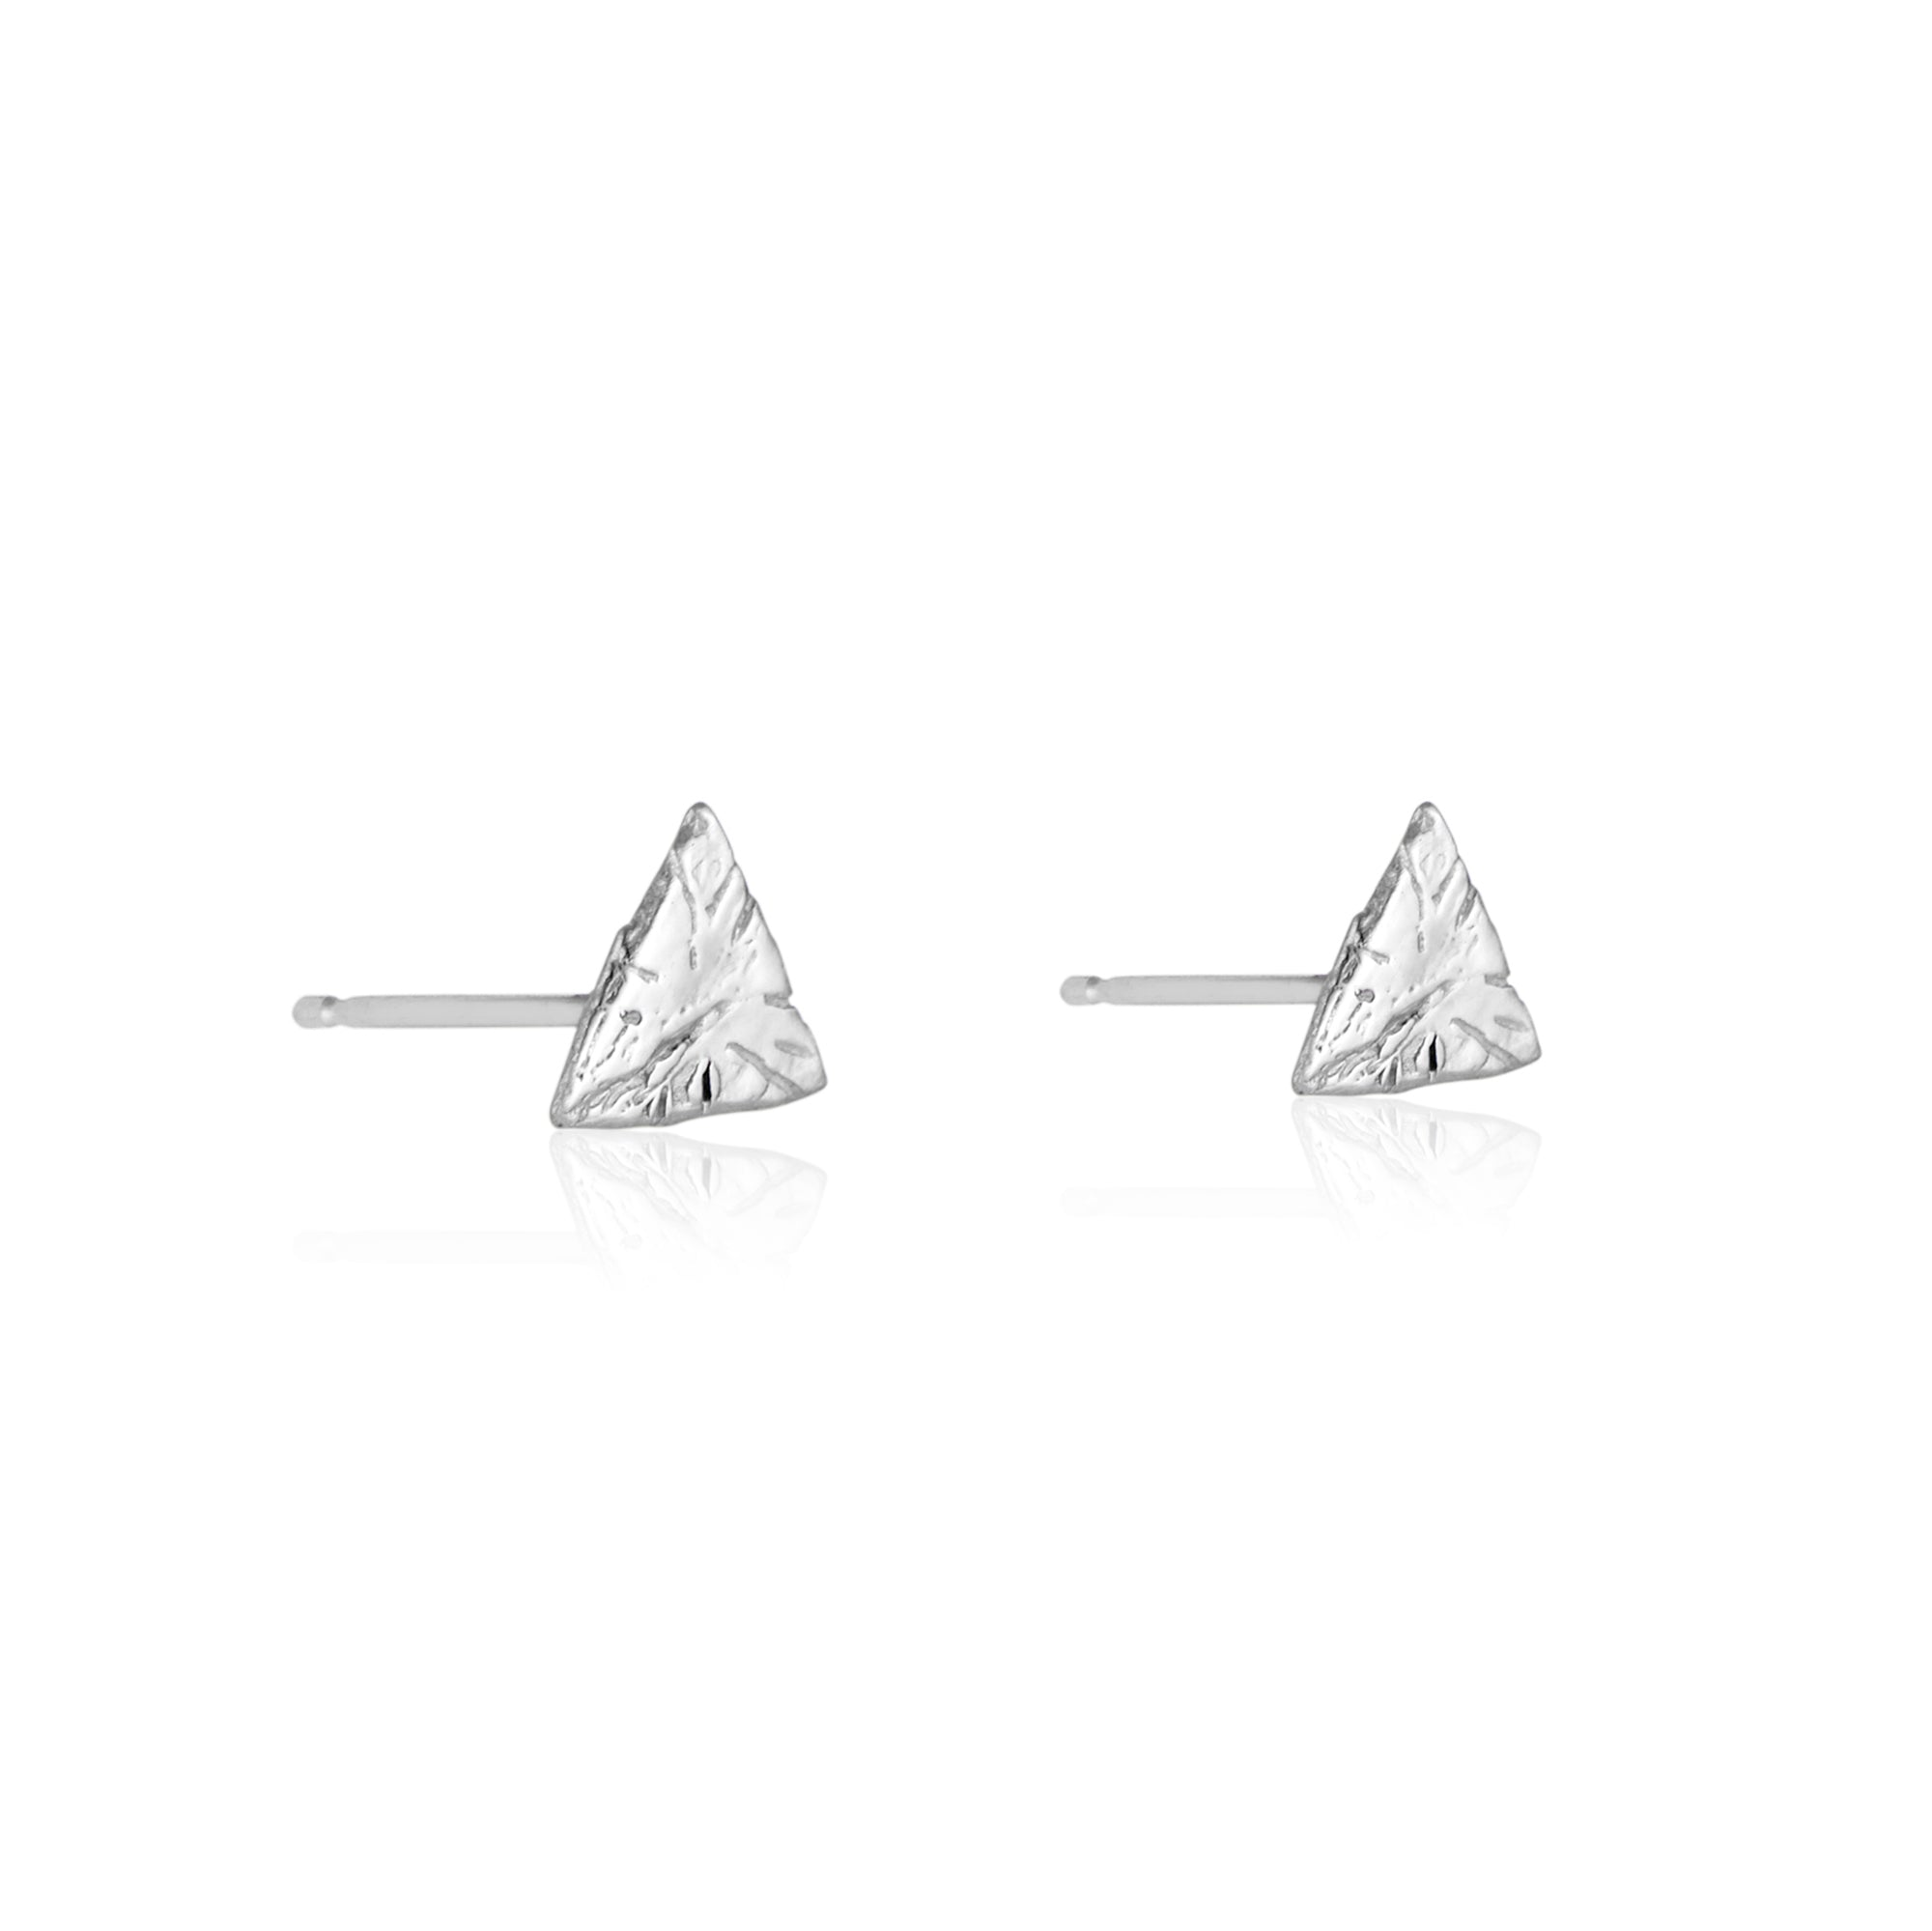 The Natalie McMillan tiny silver Joy Studs are an absolute staple. Wear them on their own, or even next to another pair, like the Erin or Casandra Hoops! Made of sterling silver with sterling silver posts and backs.